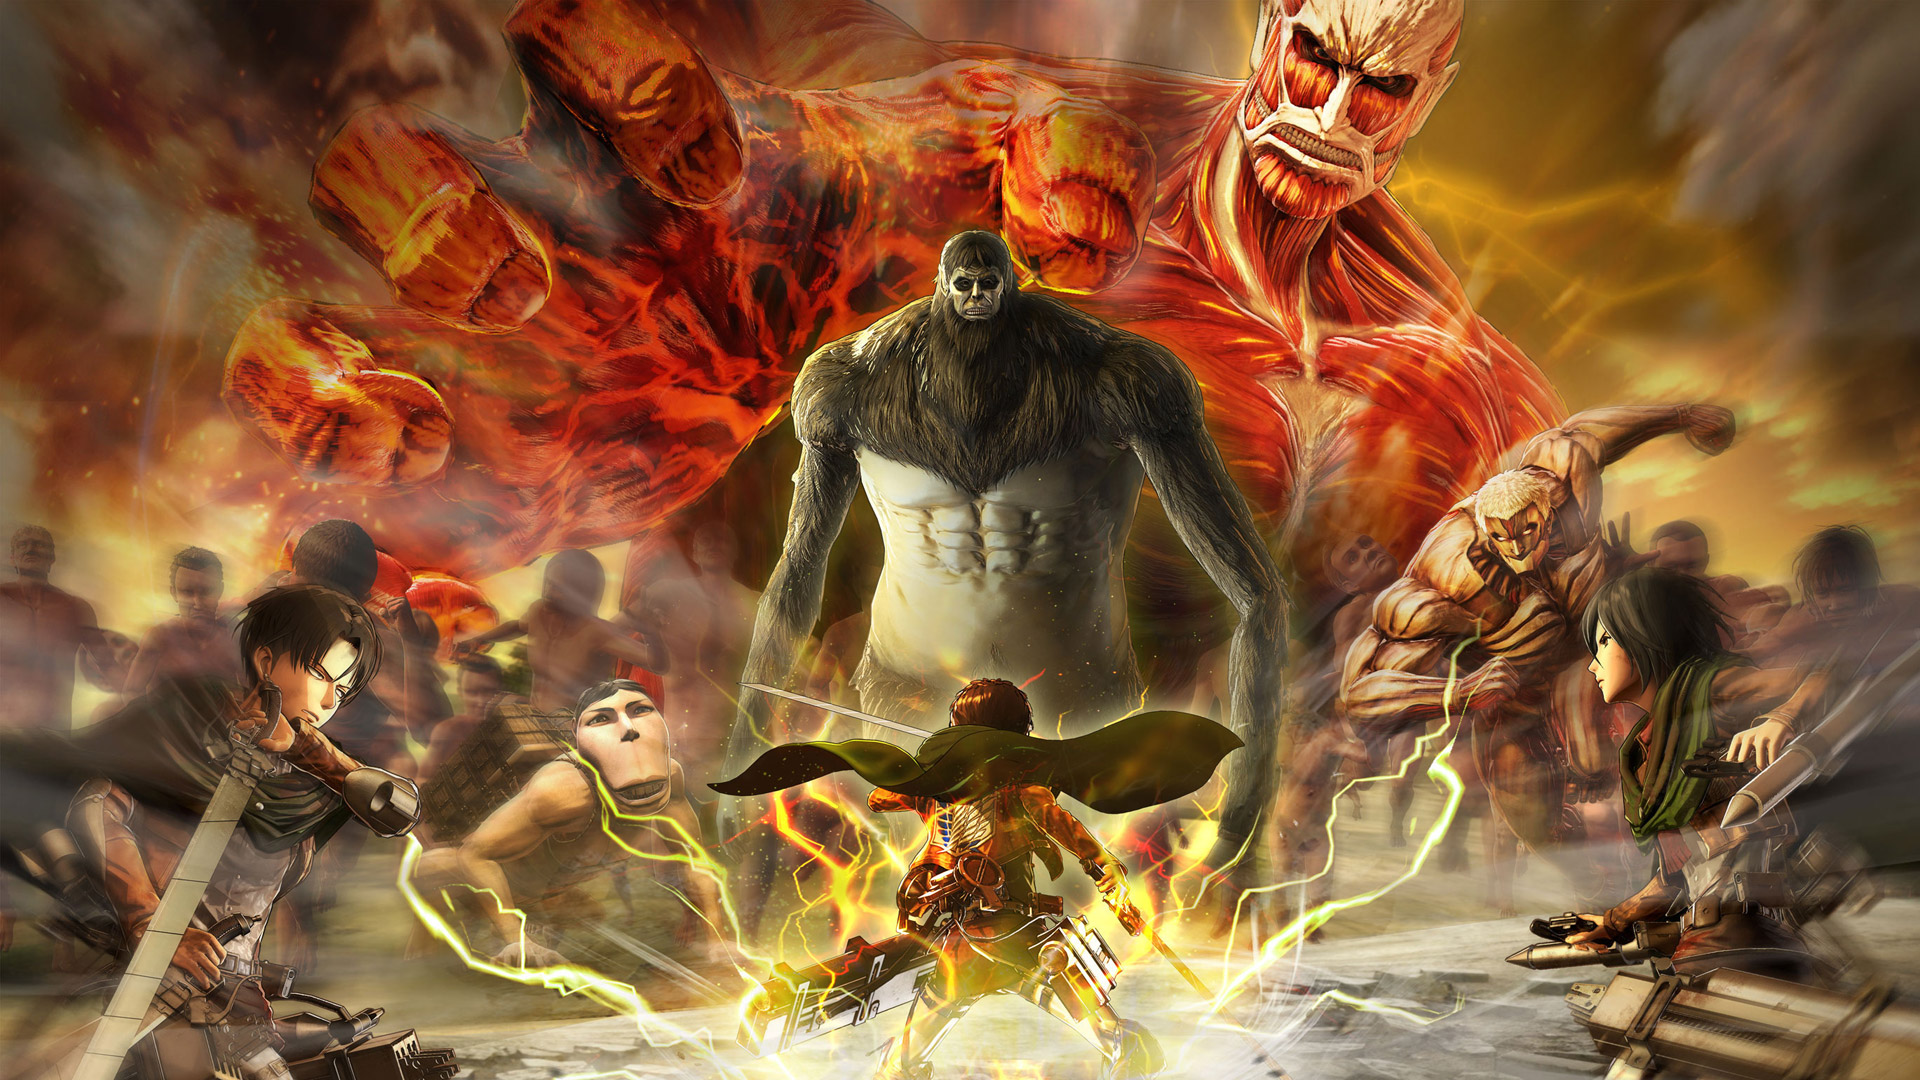 Free Attack On Titan 2 Wallpaper In Aot 2 Final Battle 2873777 Hd Wallpaper Backgrounds Download